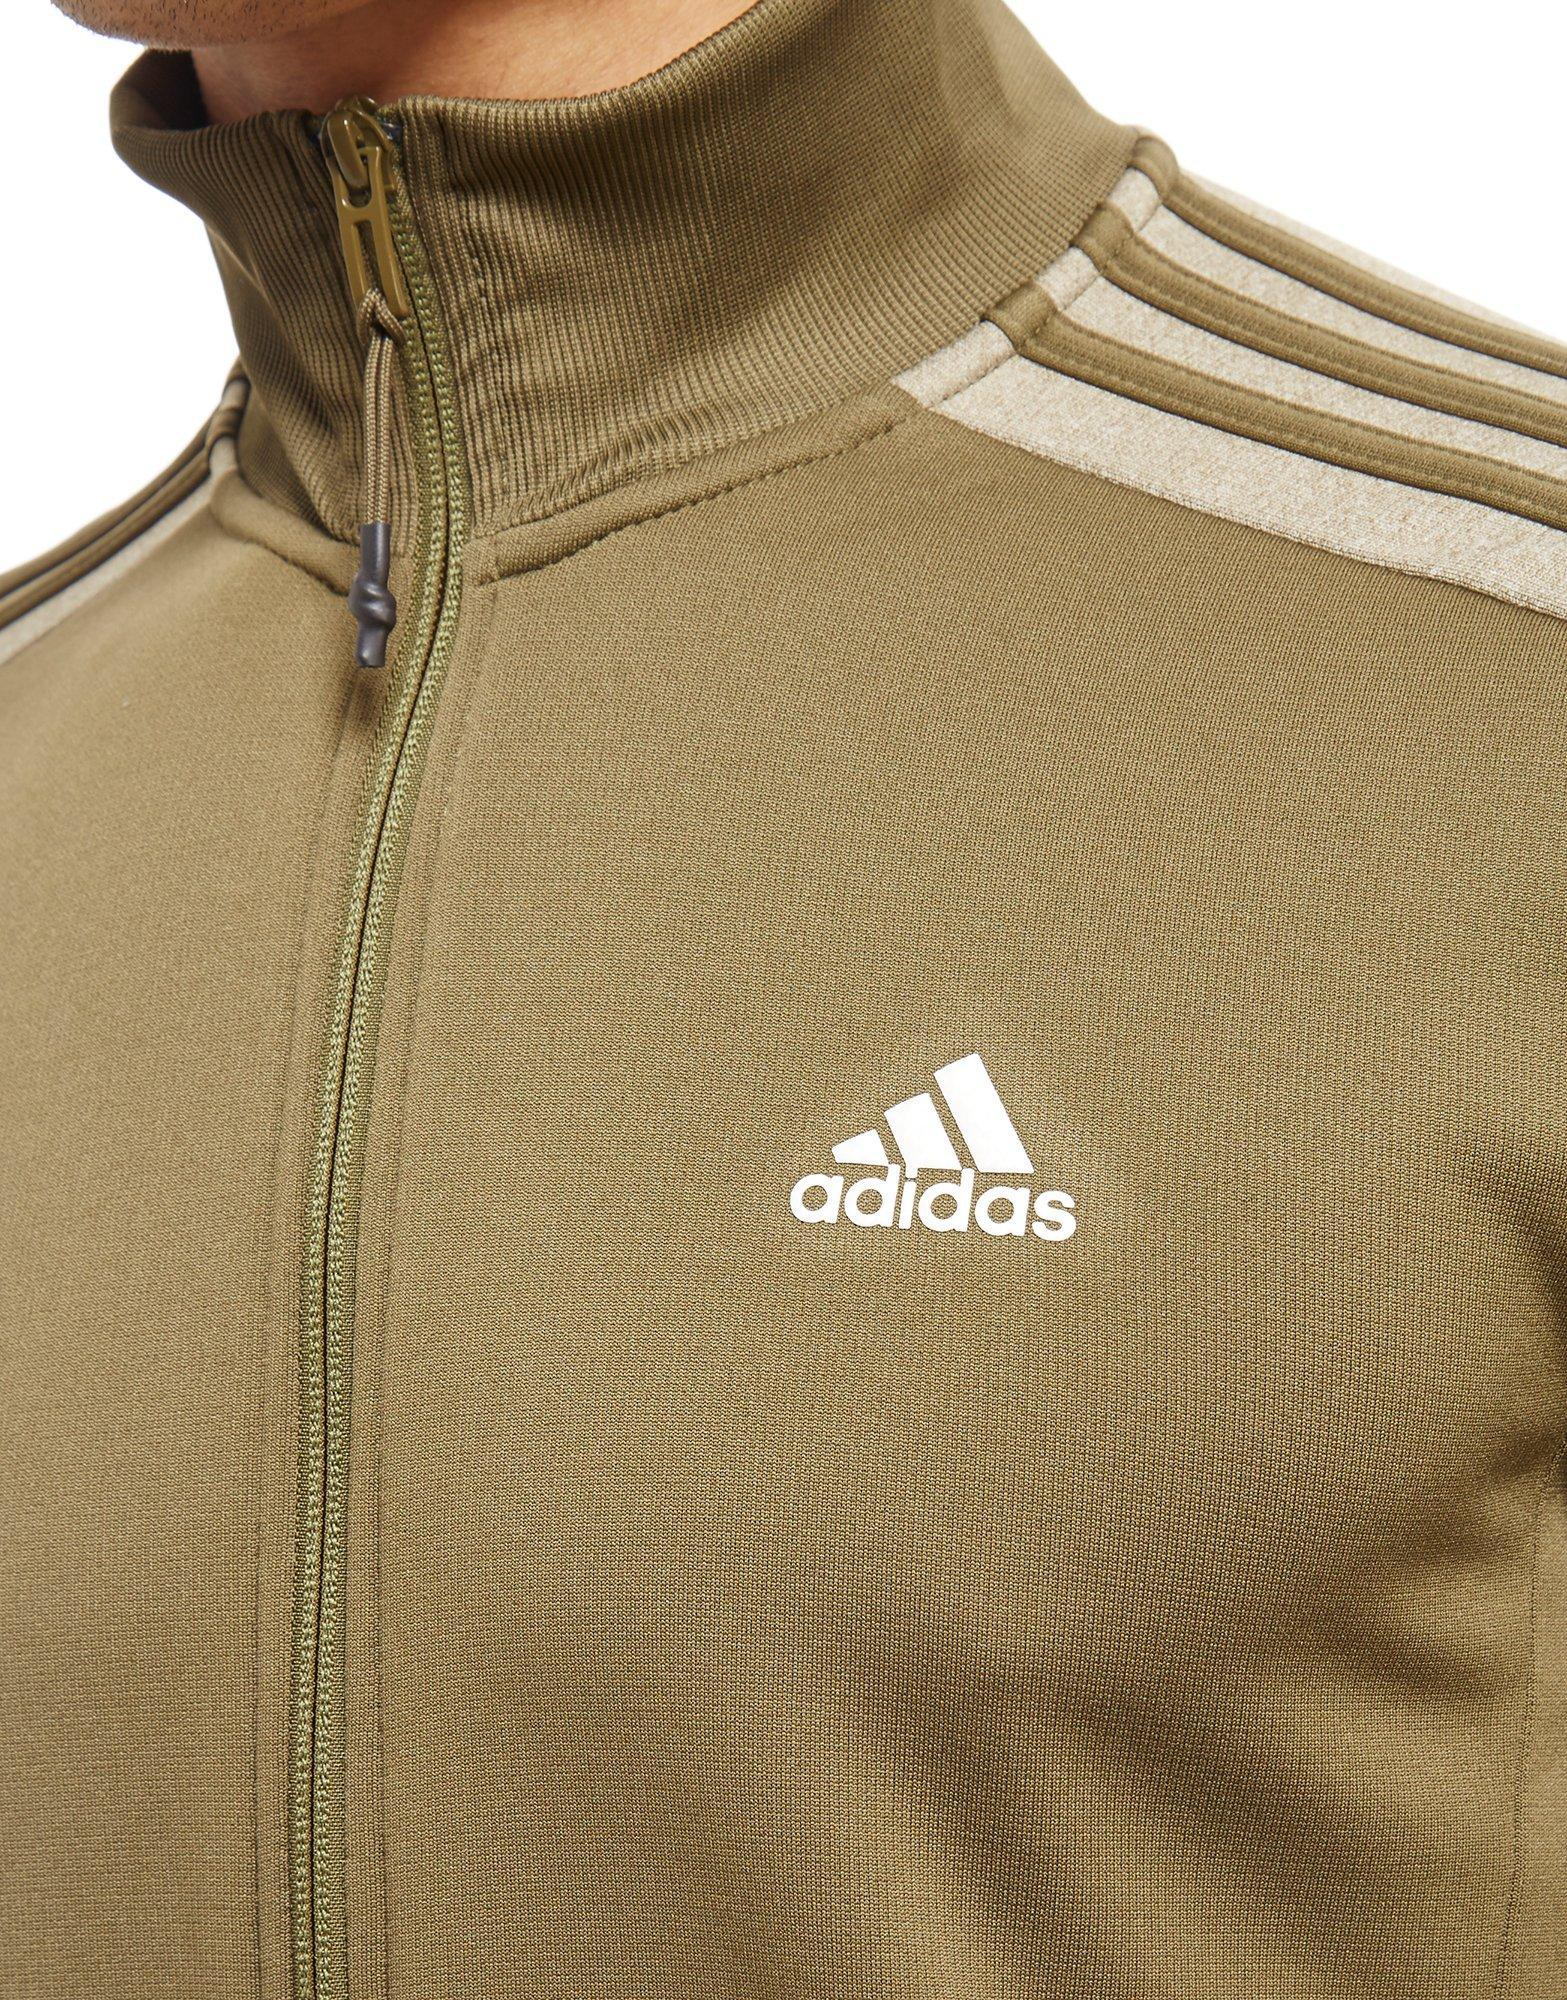 lyst adidas reflex track top in green for men. Black Bedroom Furniture Sets. Home Design Ideas